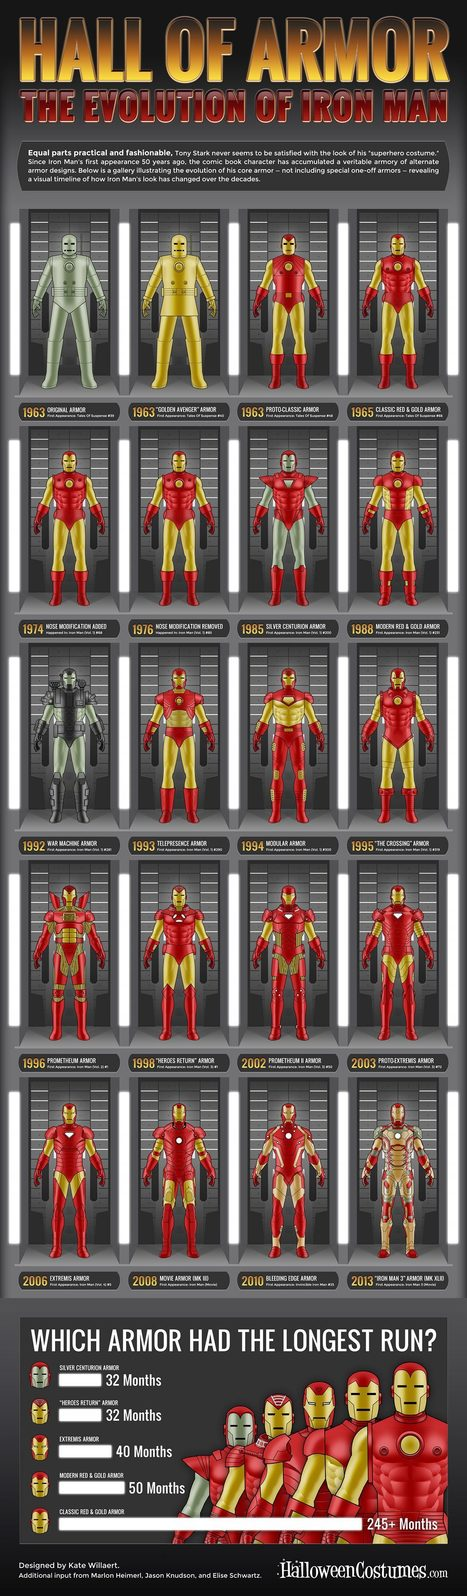 Infographic : Iron Man Evolution | All Geeks | Scoop.it